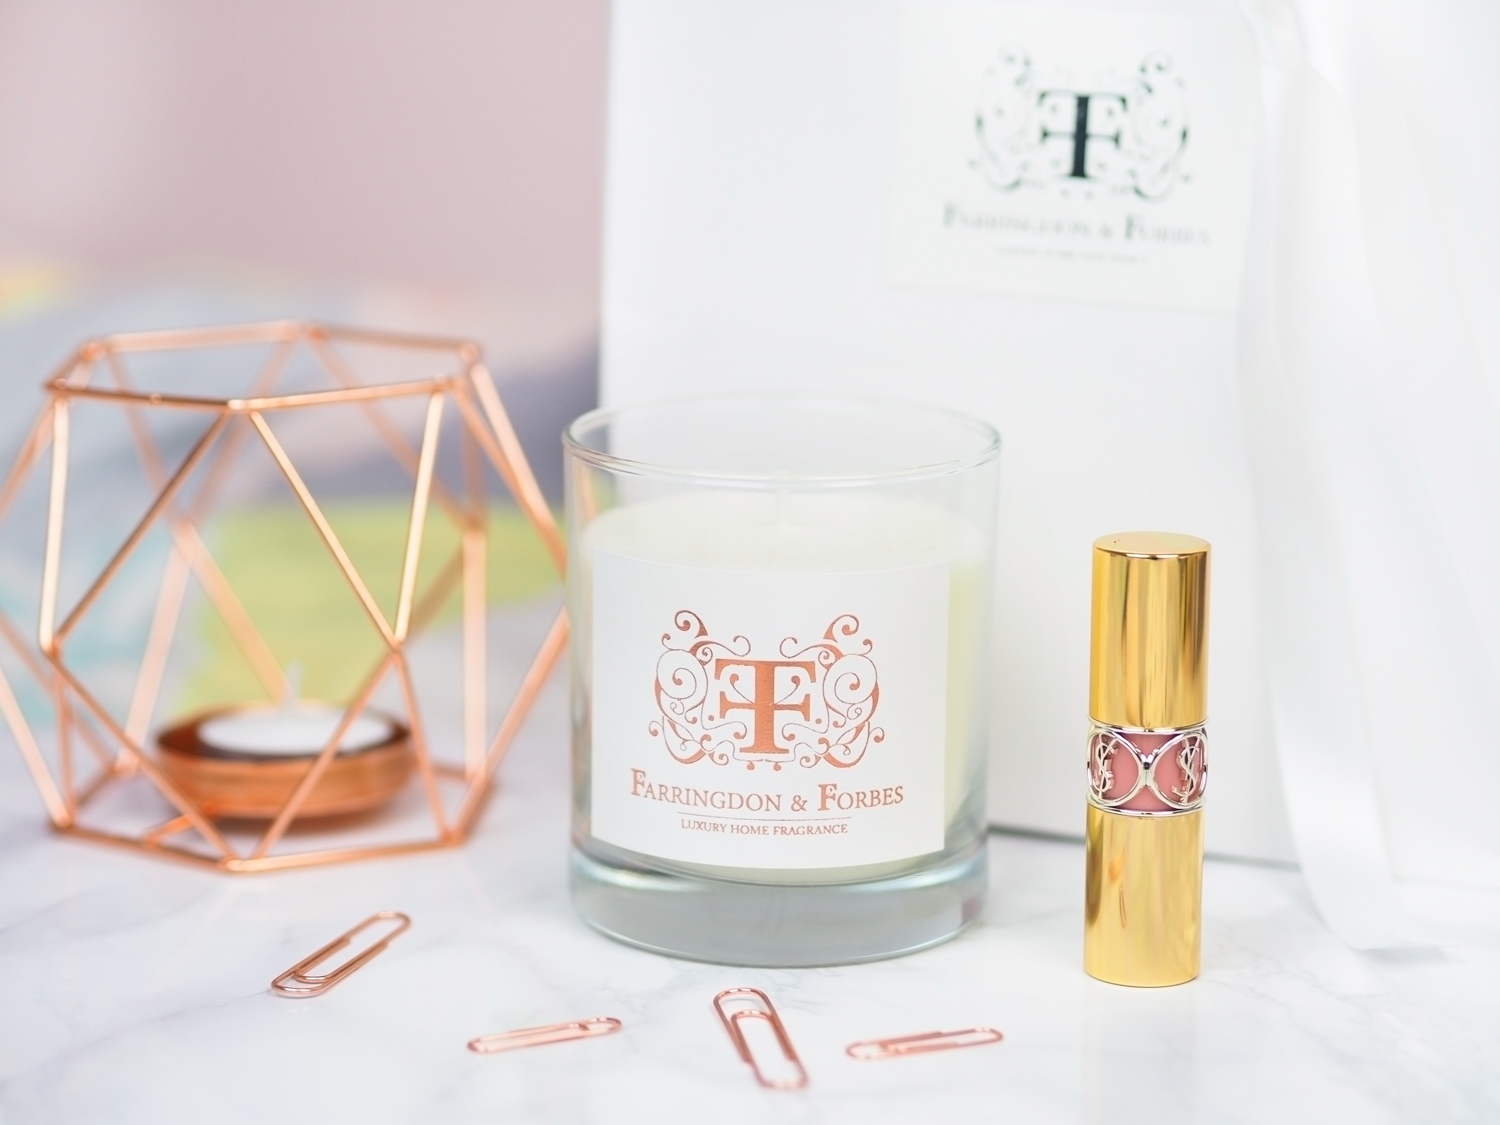 Farringdon & Forbes Candles